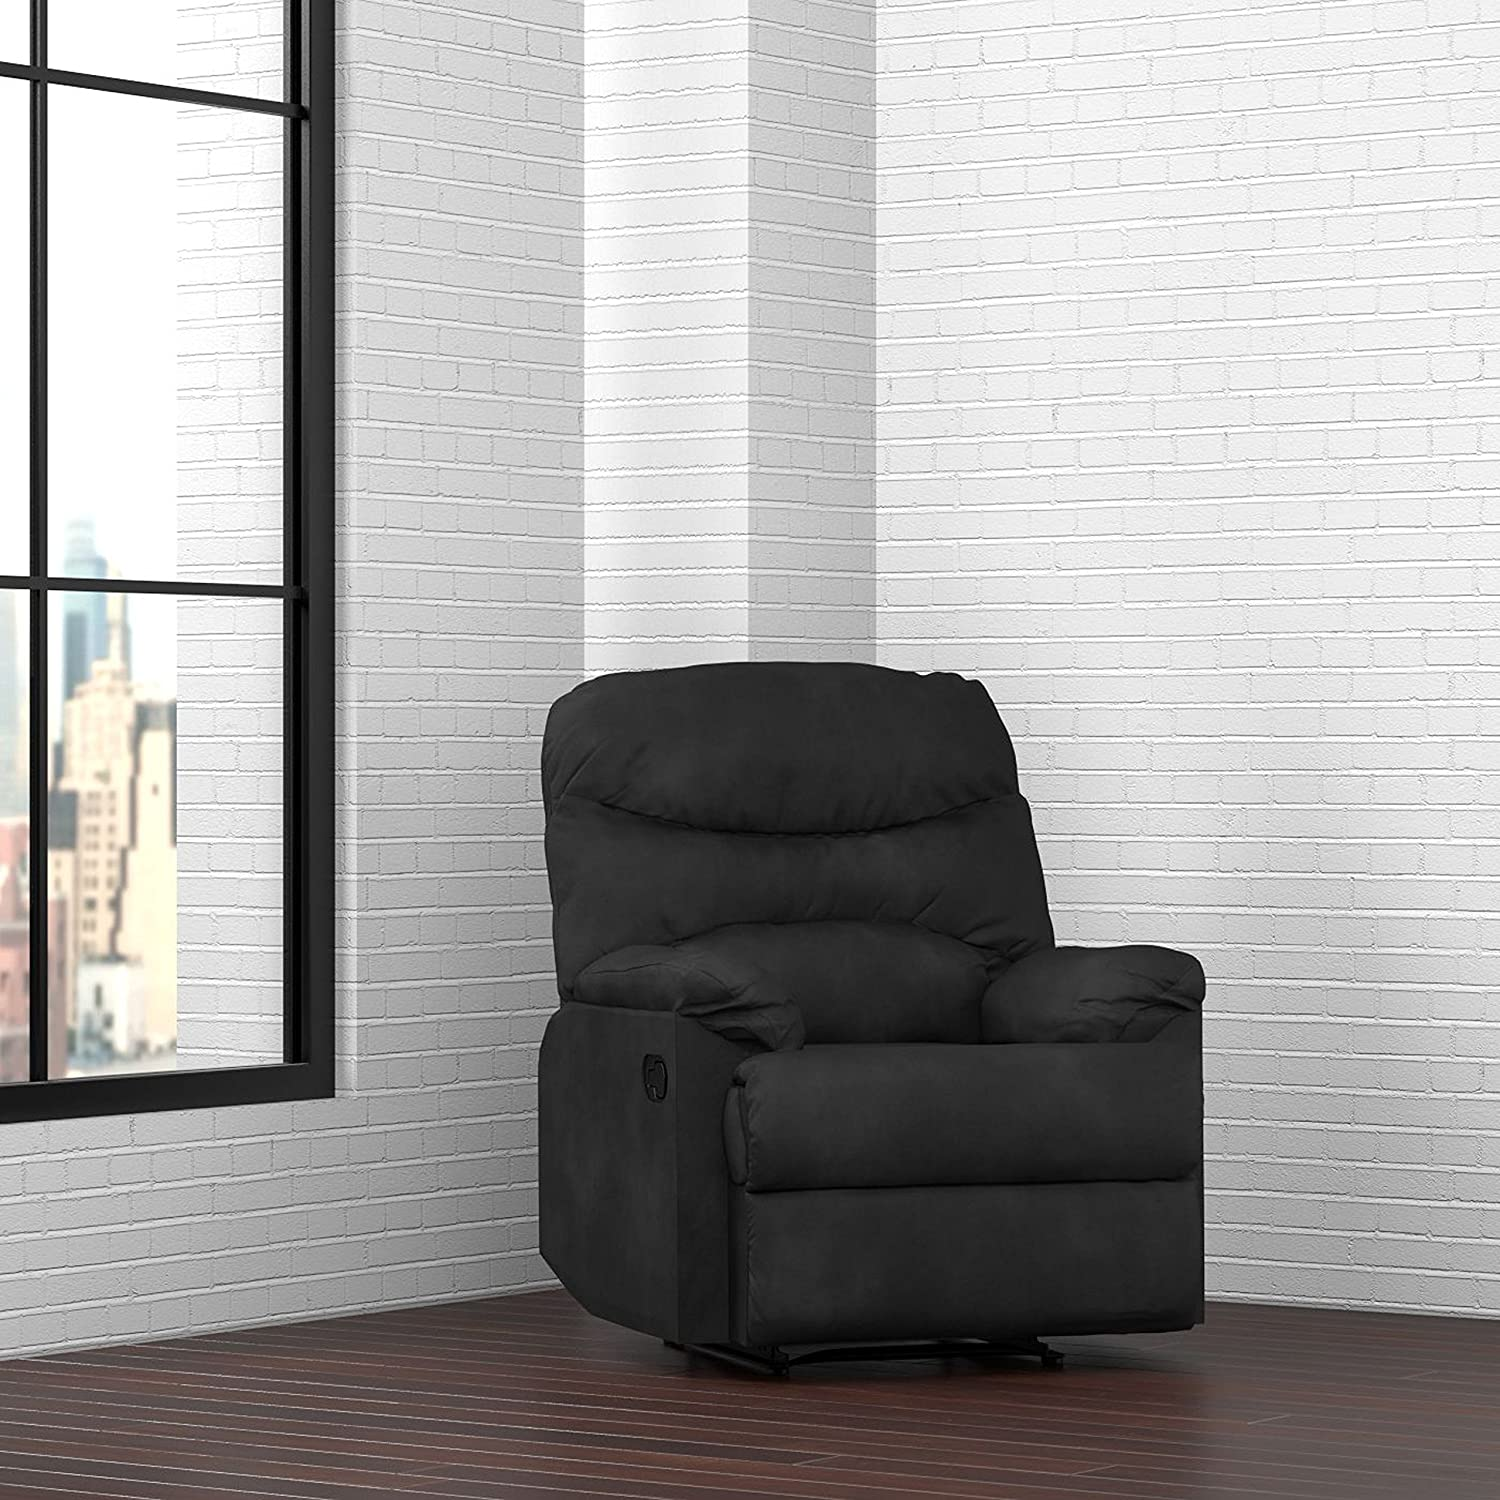 Amazon.com ProLounger Wall Hugger Recliner Chair in Black Microfiber Kitchen u0026 Dining & Amazon.com: ProLounger Wall Hugger Recliner Chair in Black ... islam-shia.org